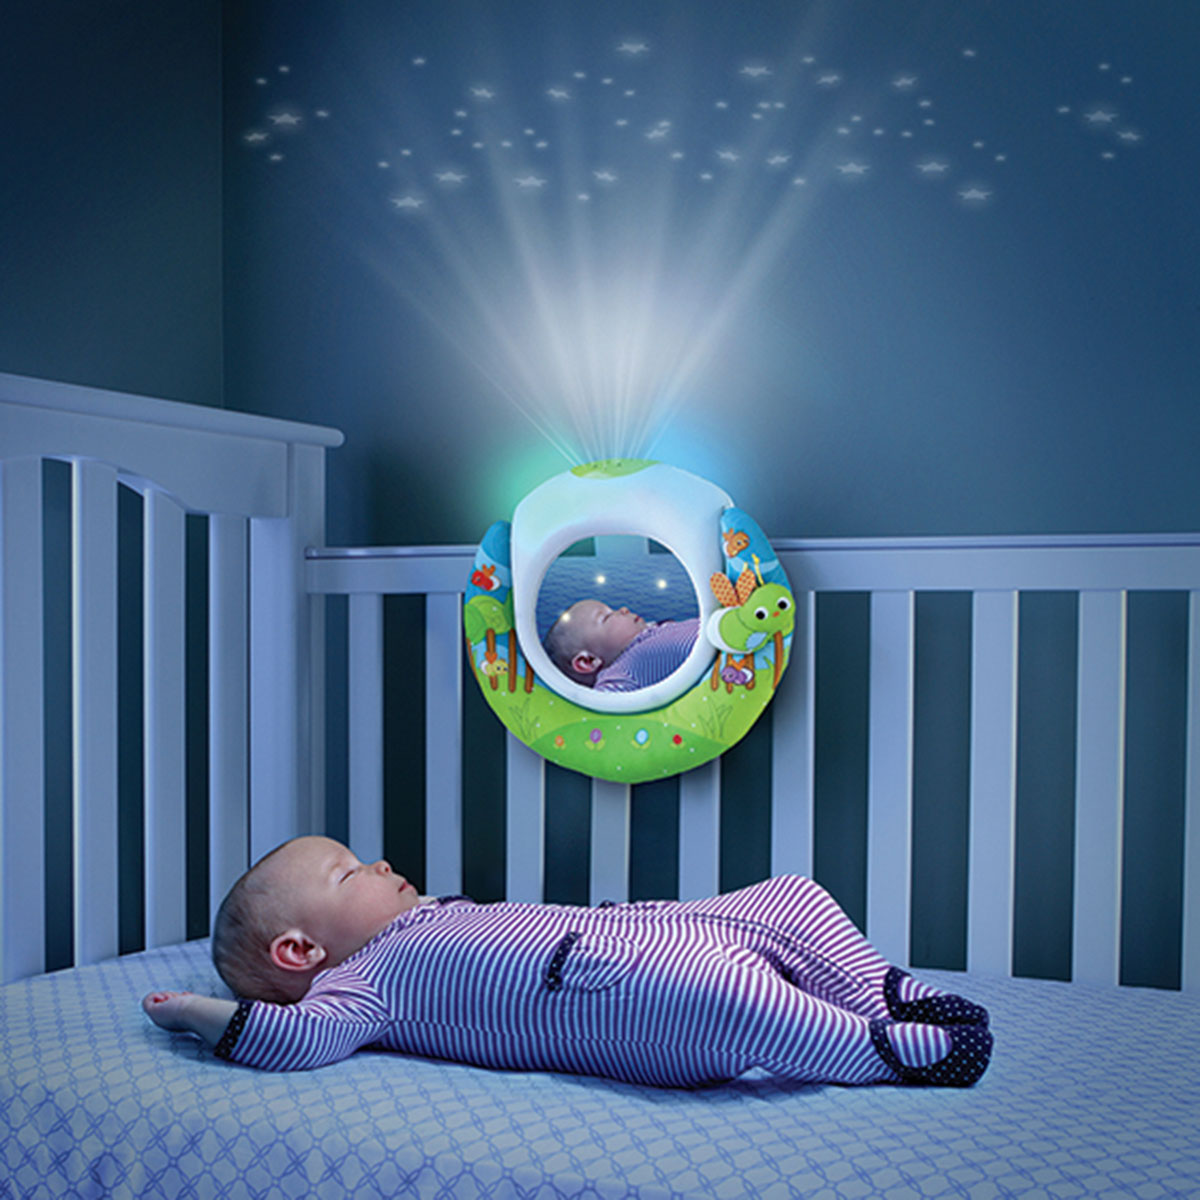 Kids Star Night Lights Make Your Kids Happy With Baby Ceiling Light Projector